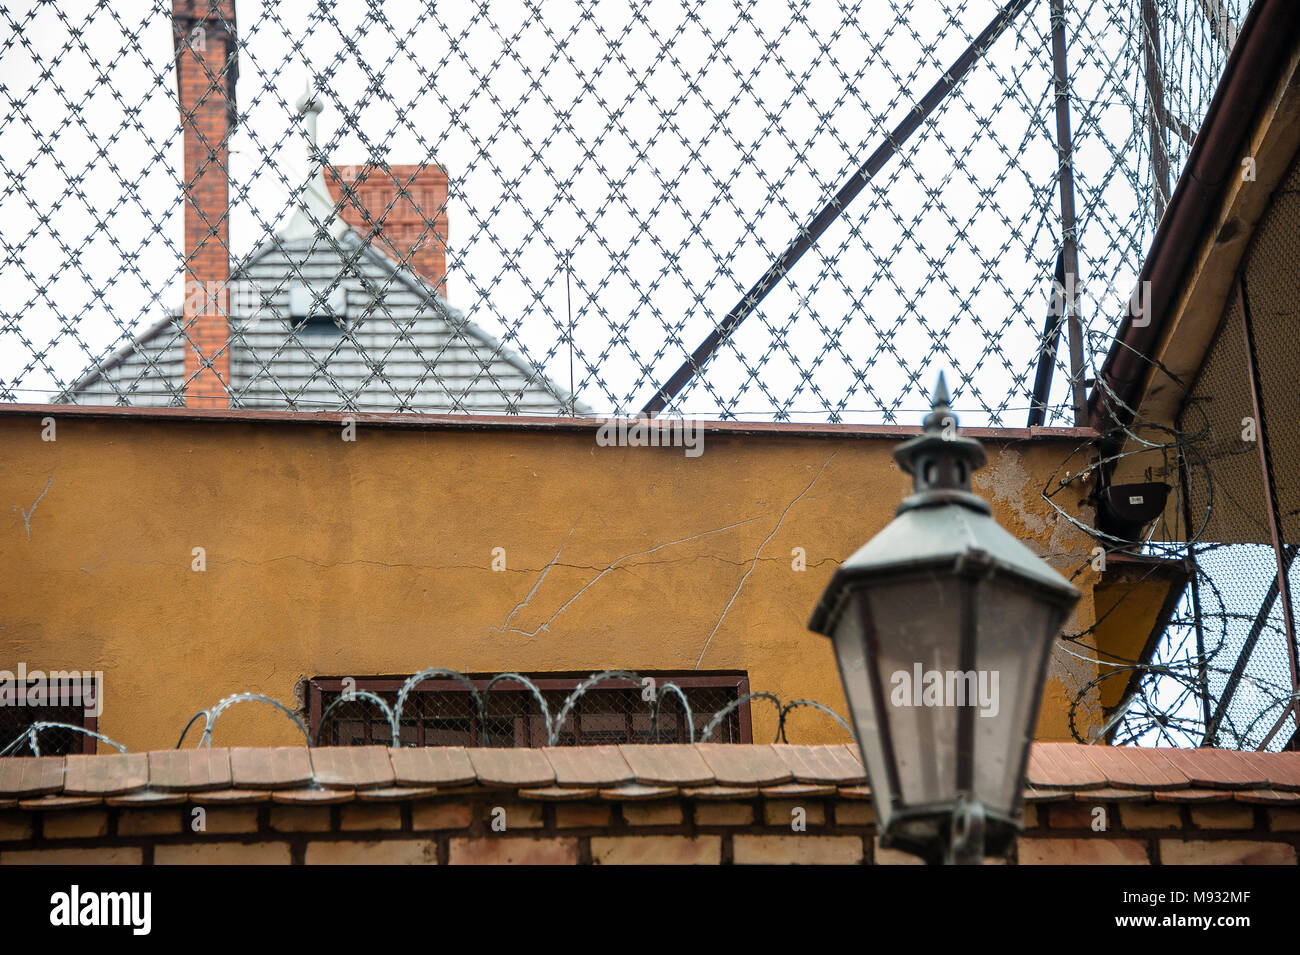 Security measures around a detention centre building in Torun, Poland. Razor wire, high wall, rooftop view - Stock Image